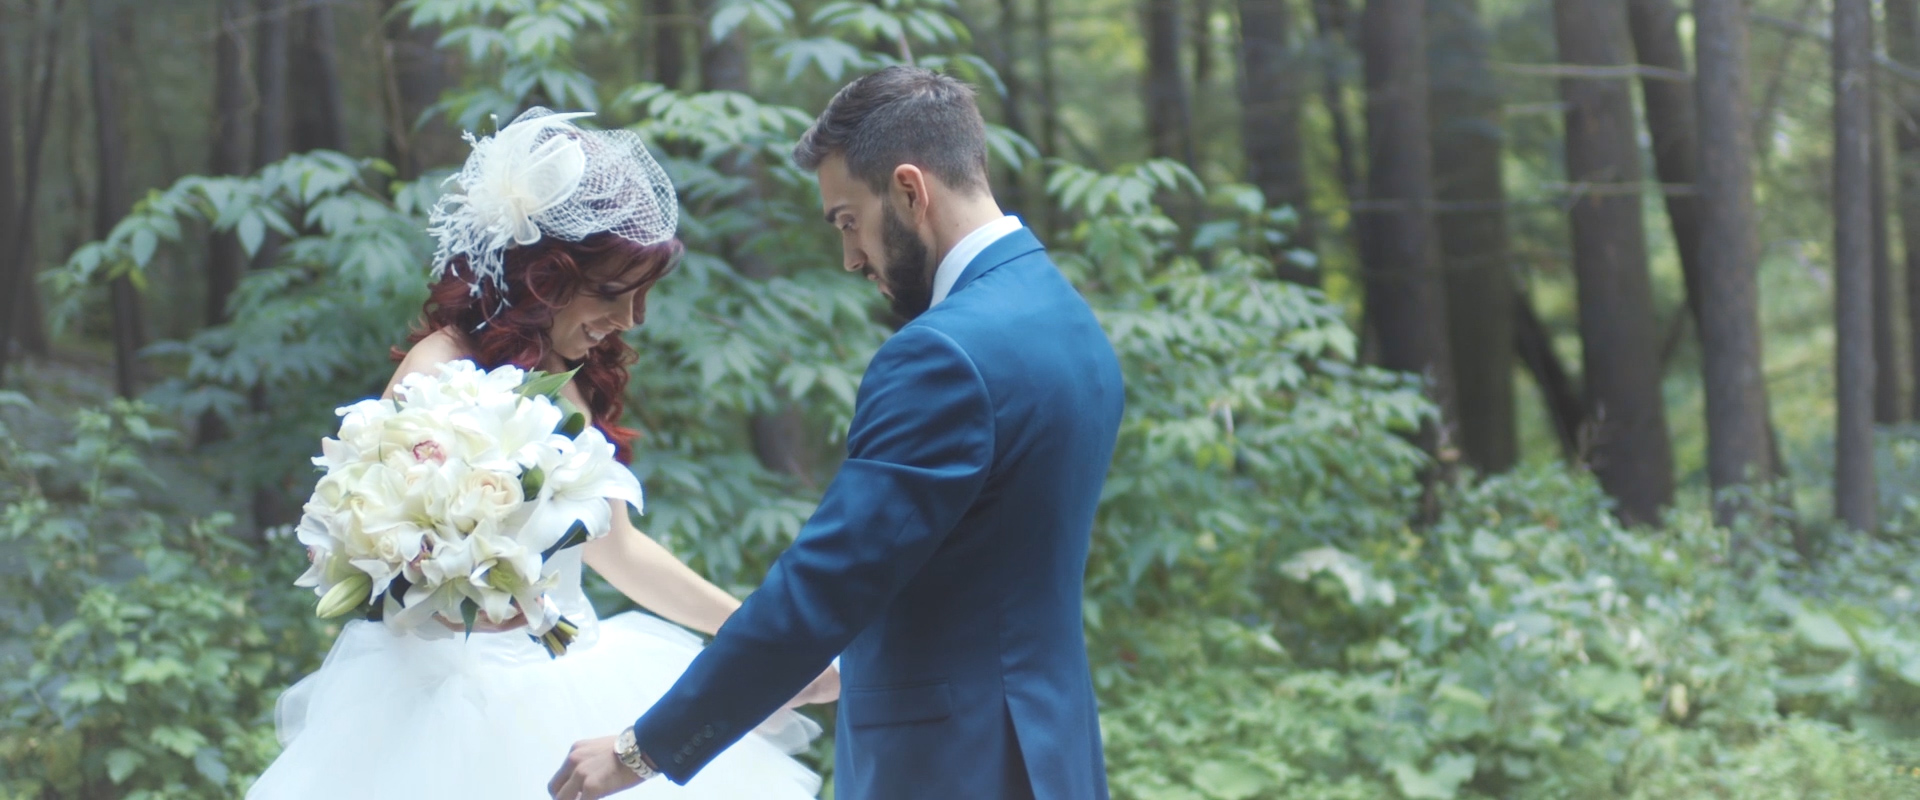 An image of a wedding couple during their first look; taken from a Toronto Wedding Video